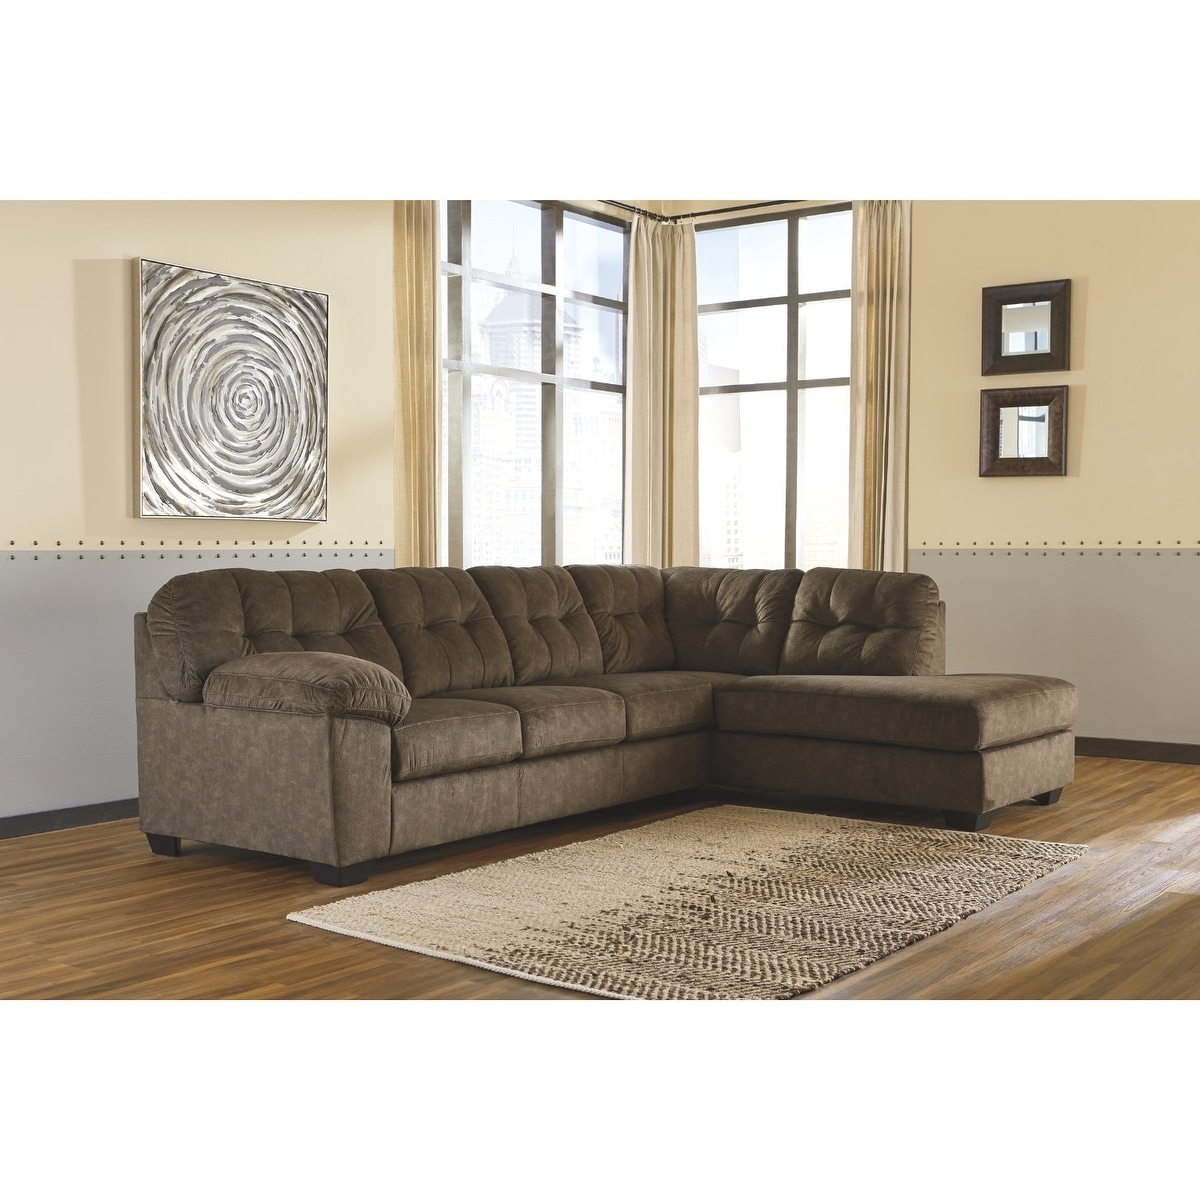 Shop Accrington 2-Piece Sectional - LAF Corner Chaise & RAF Sofa ...